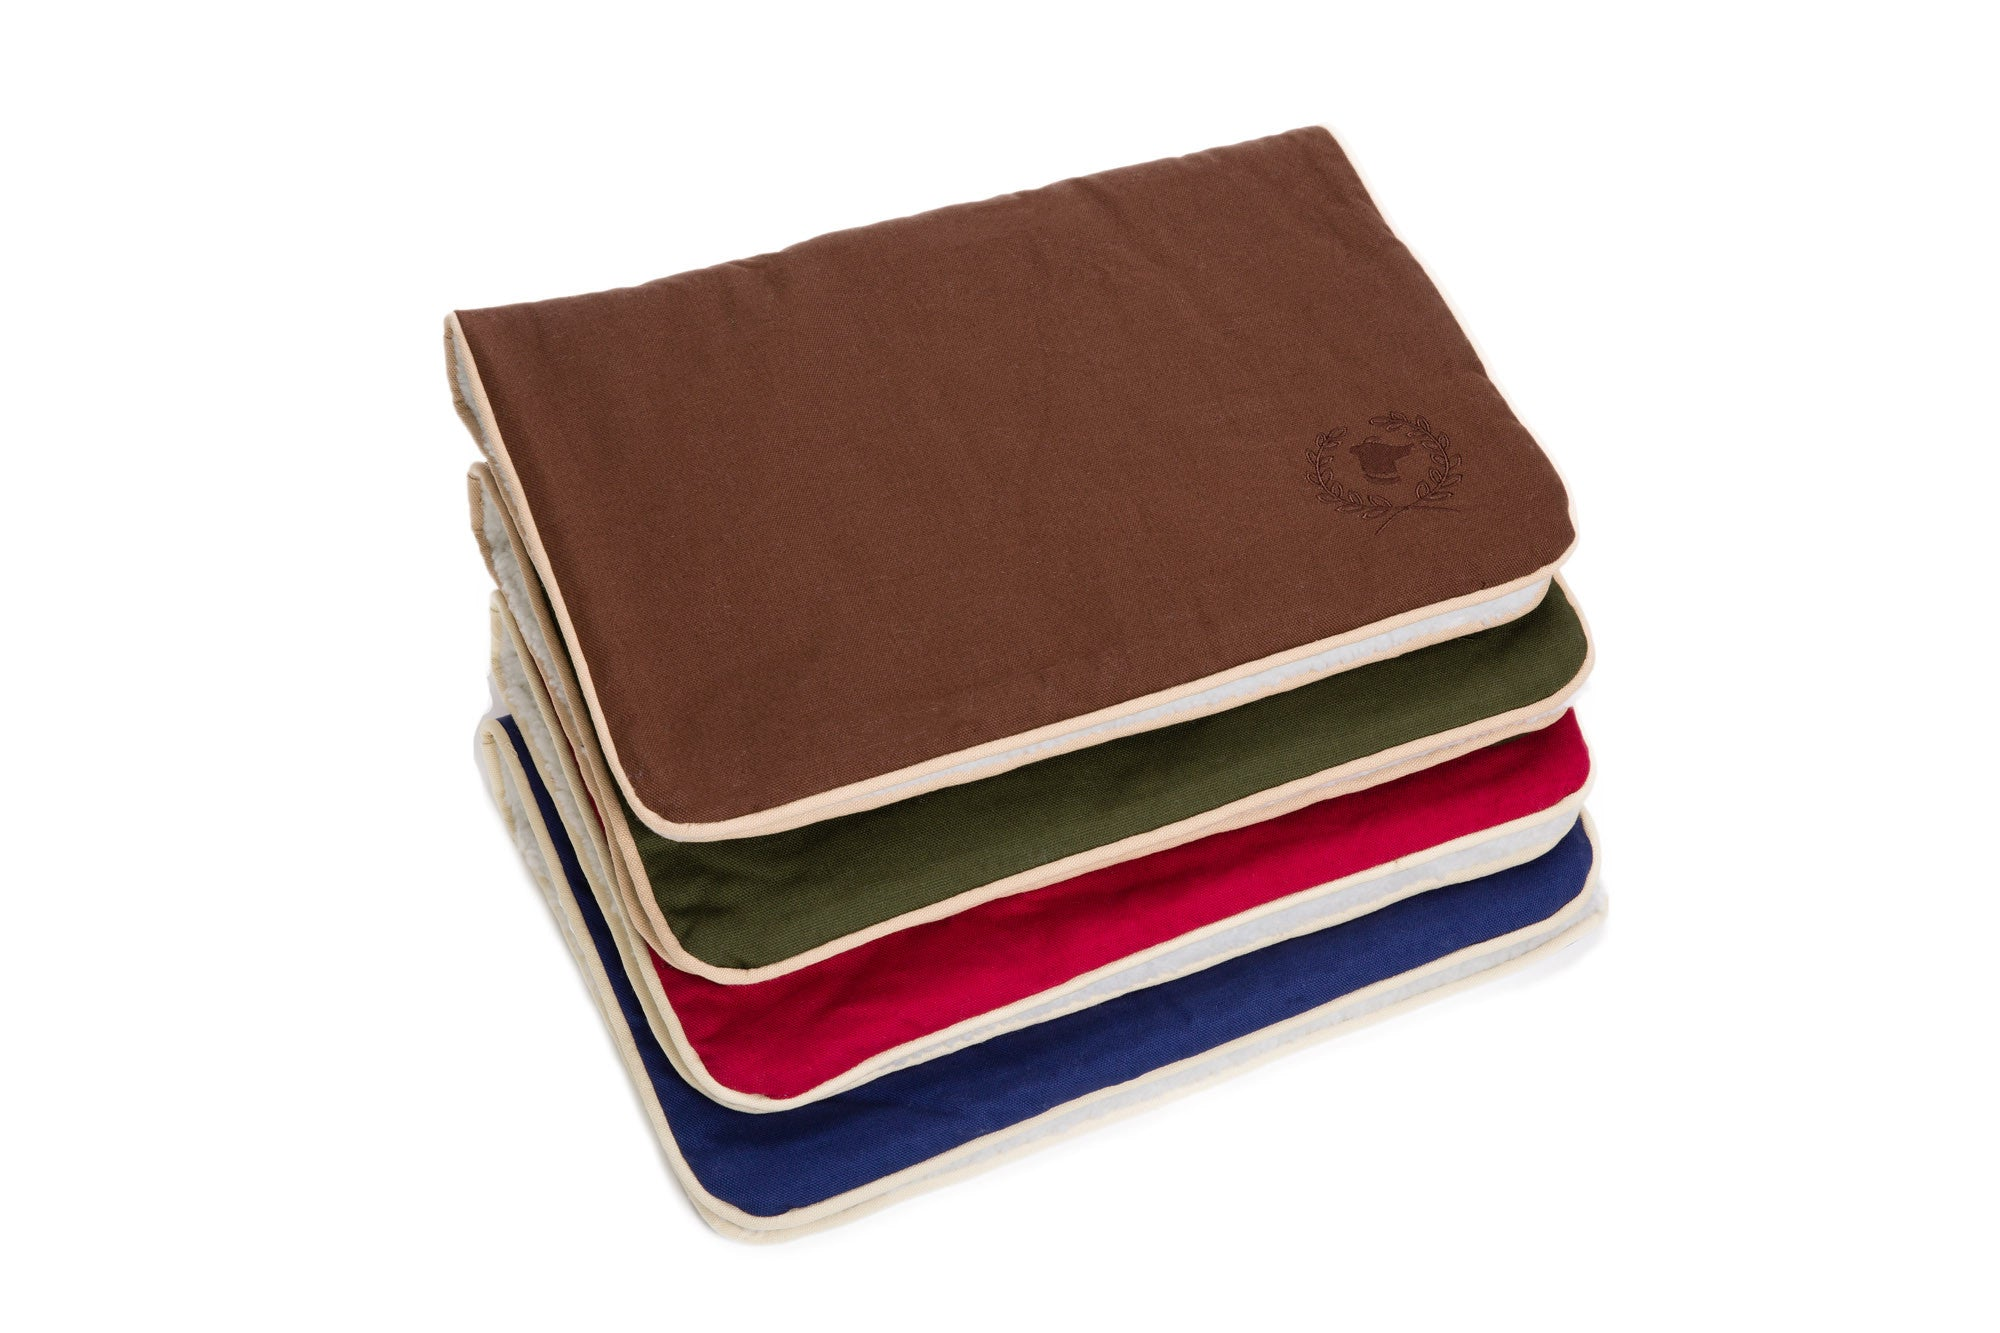 Crate Dog Mat, Blanket - Solid Colored Cotton Canvas - Dog Bed, 4 Colors